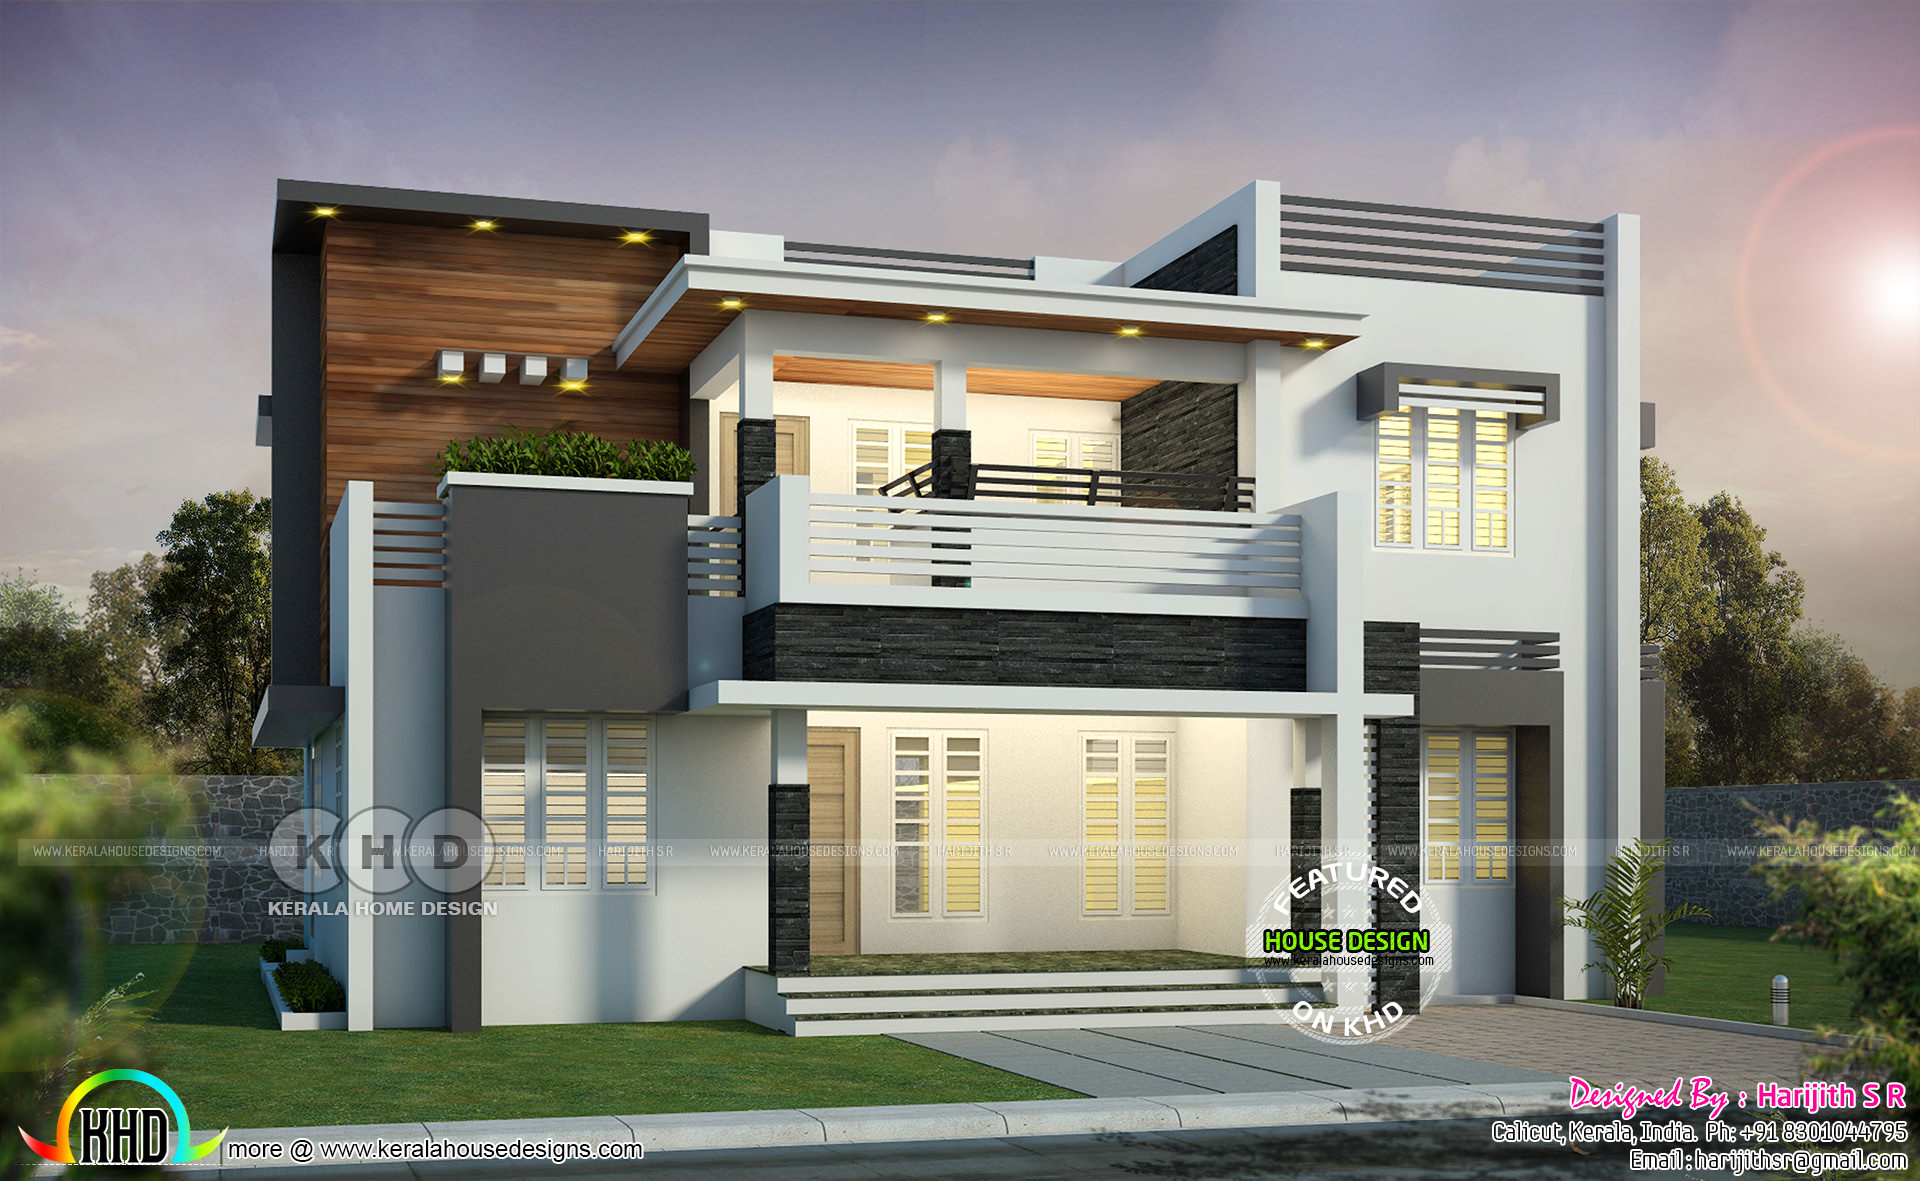 May 2019 House Designs Starts Here 2161 Sq Ft Home